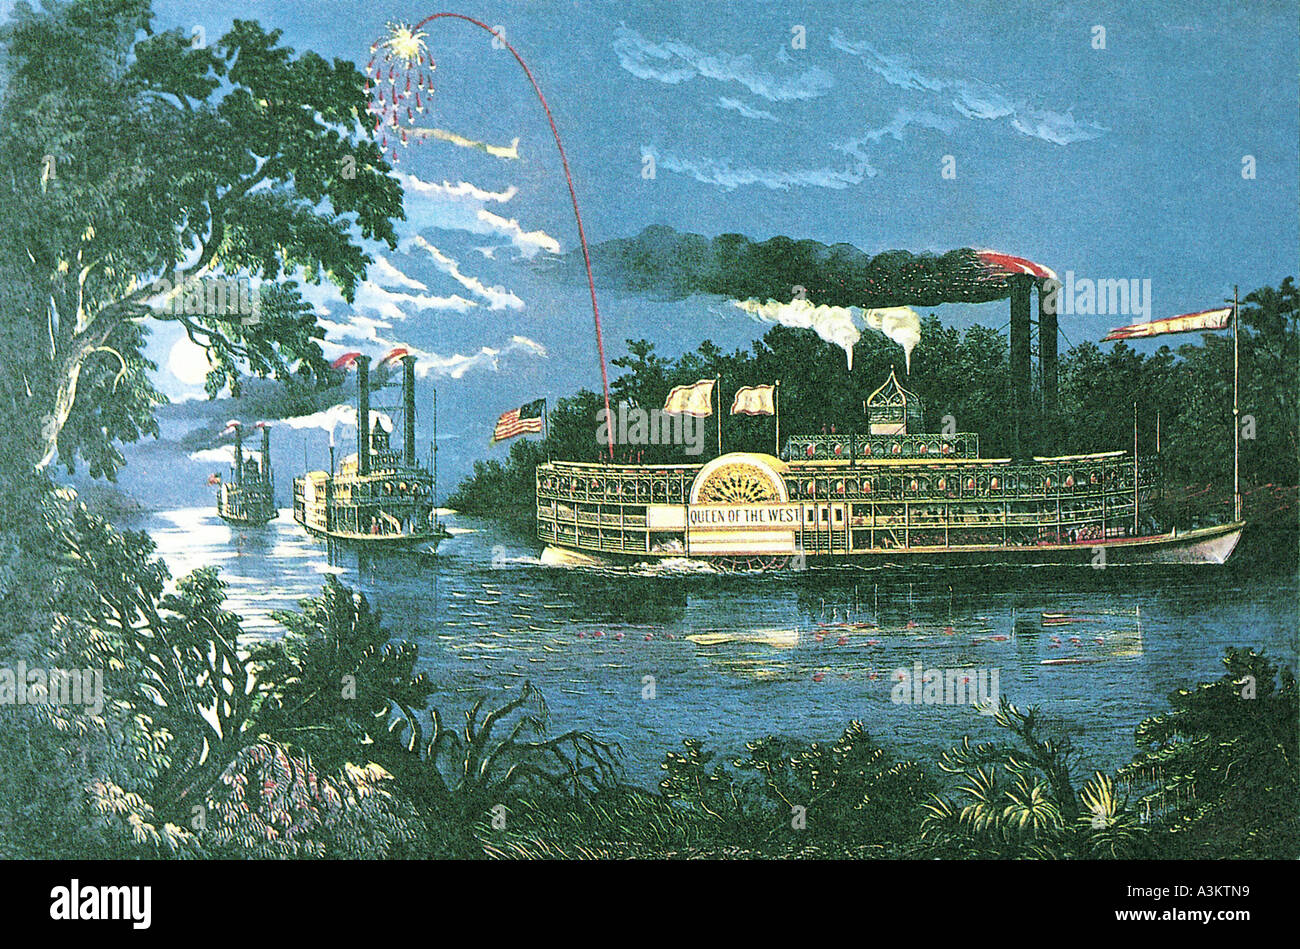 Lithograph of a midnight river boat race on the Mississippi river about 1866 - Stock Image